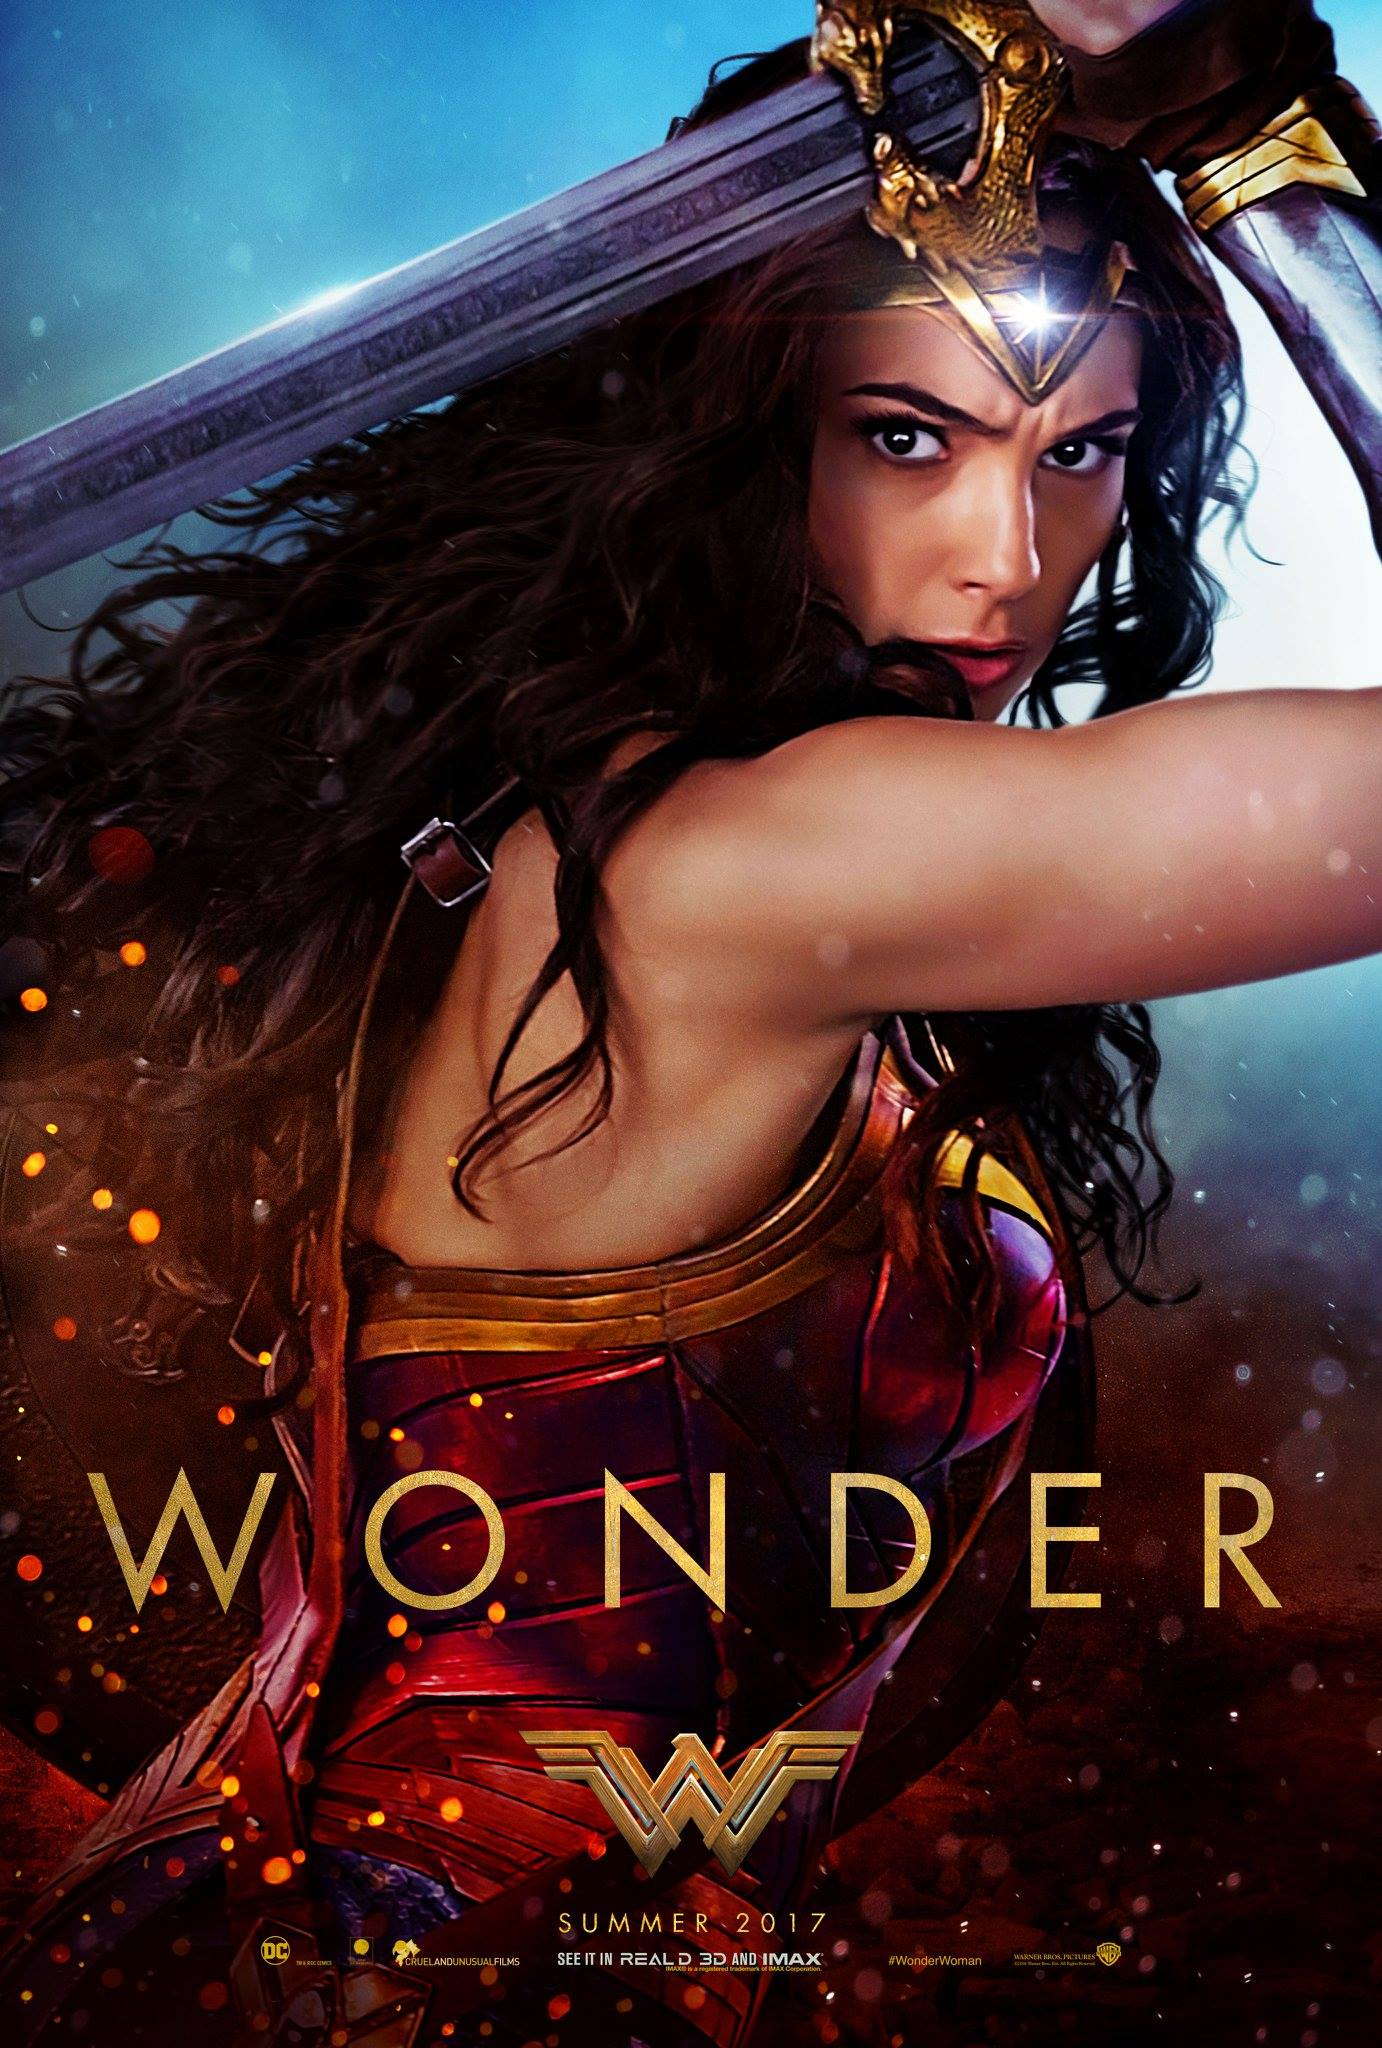 'Wonder Woman' first glimpse into possible greatness of the DCEU